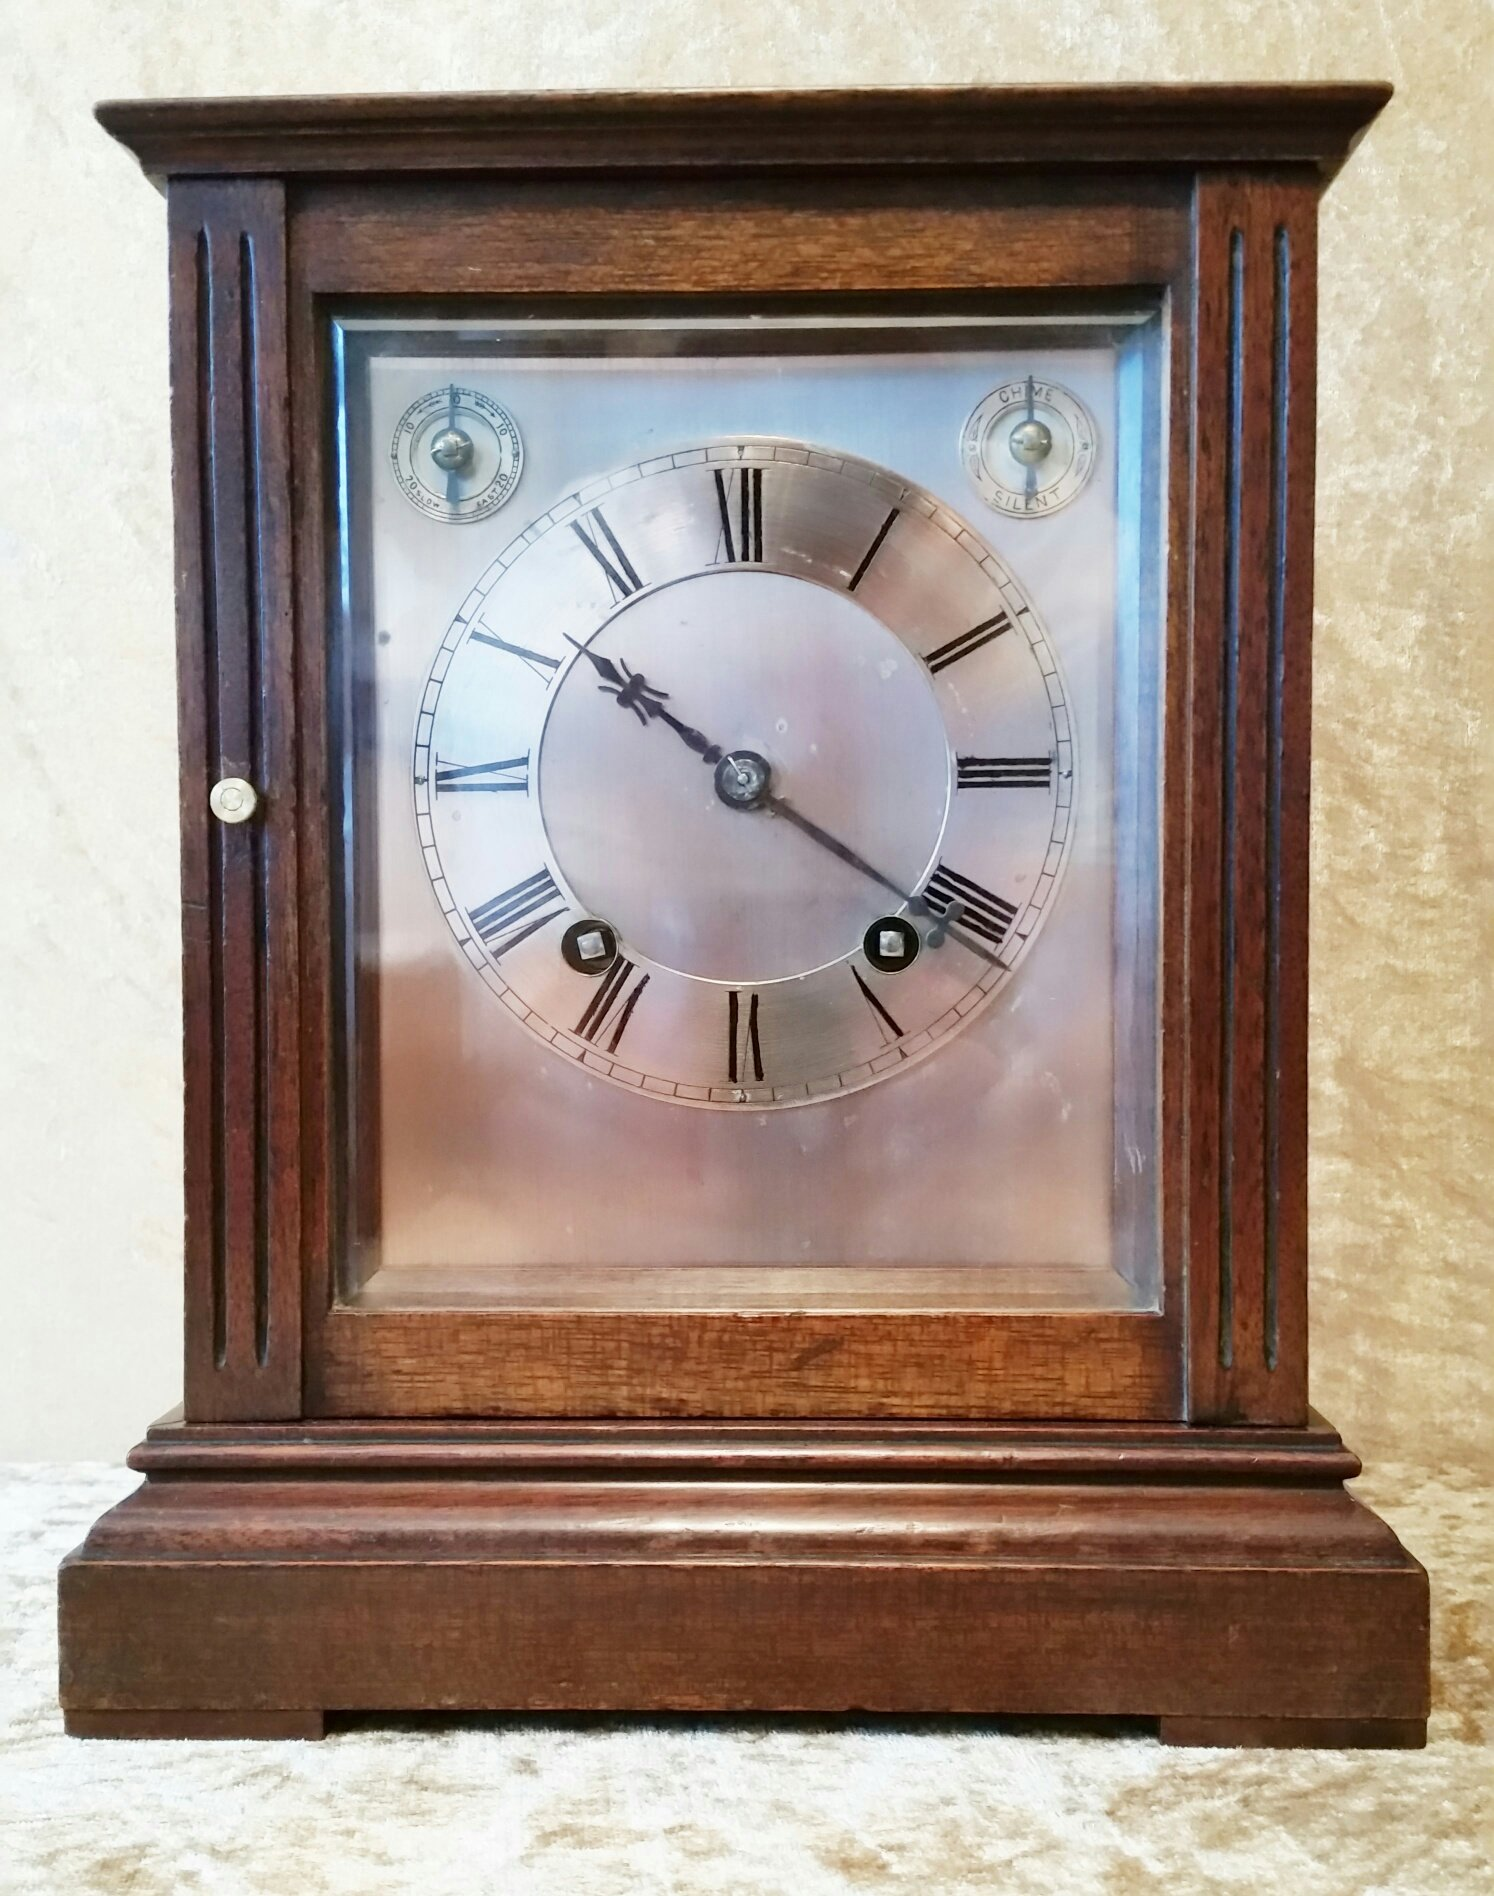 Unique Clocks For Sale In Abergavenny